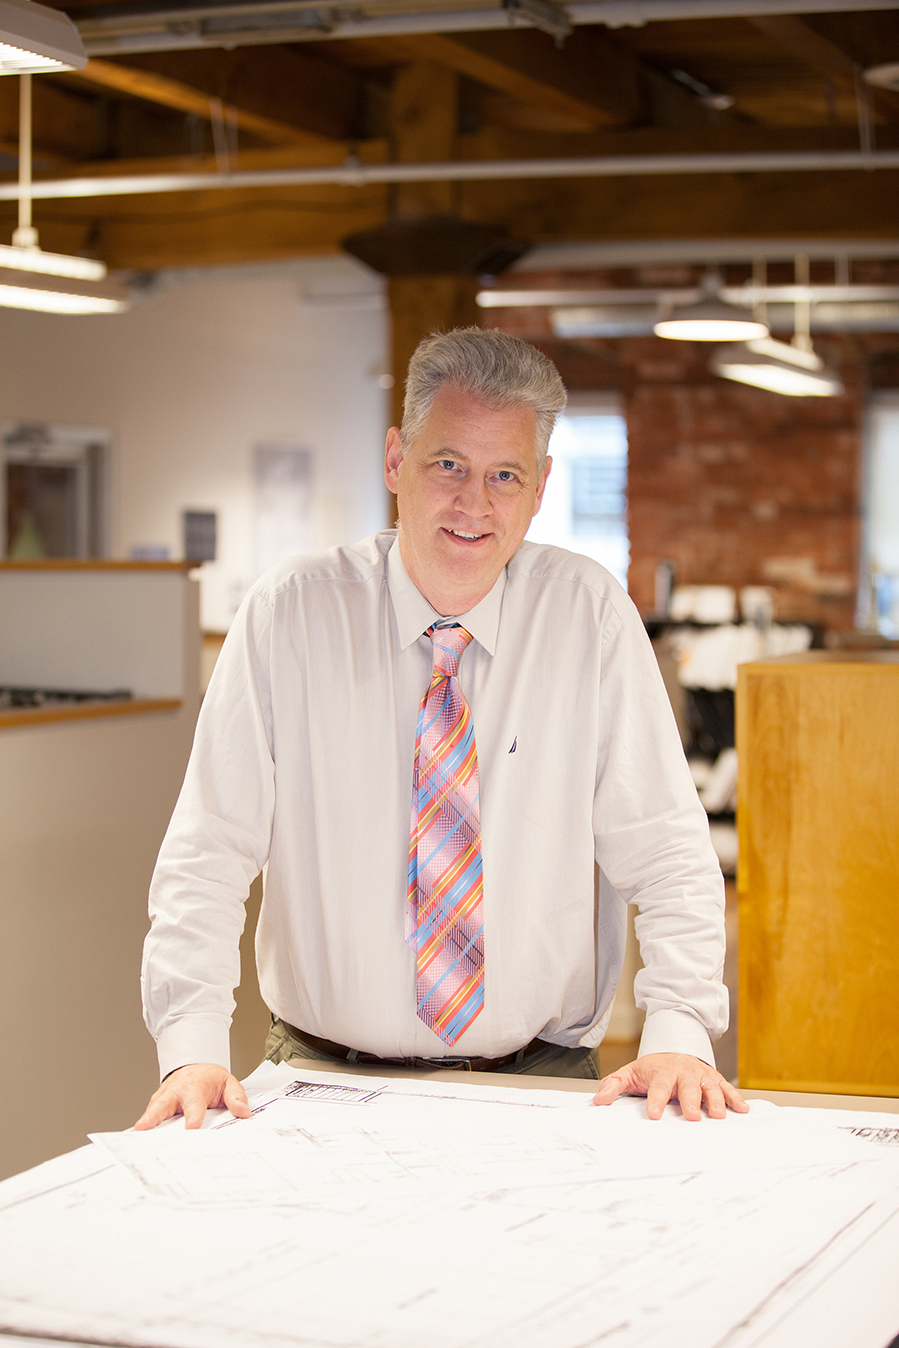 headshot of professional man in office with architectural plans